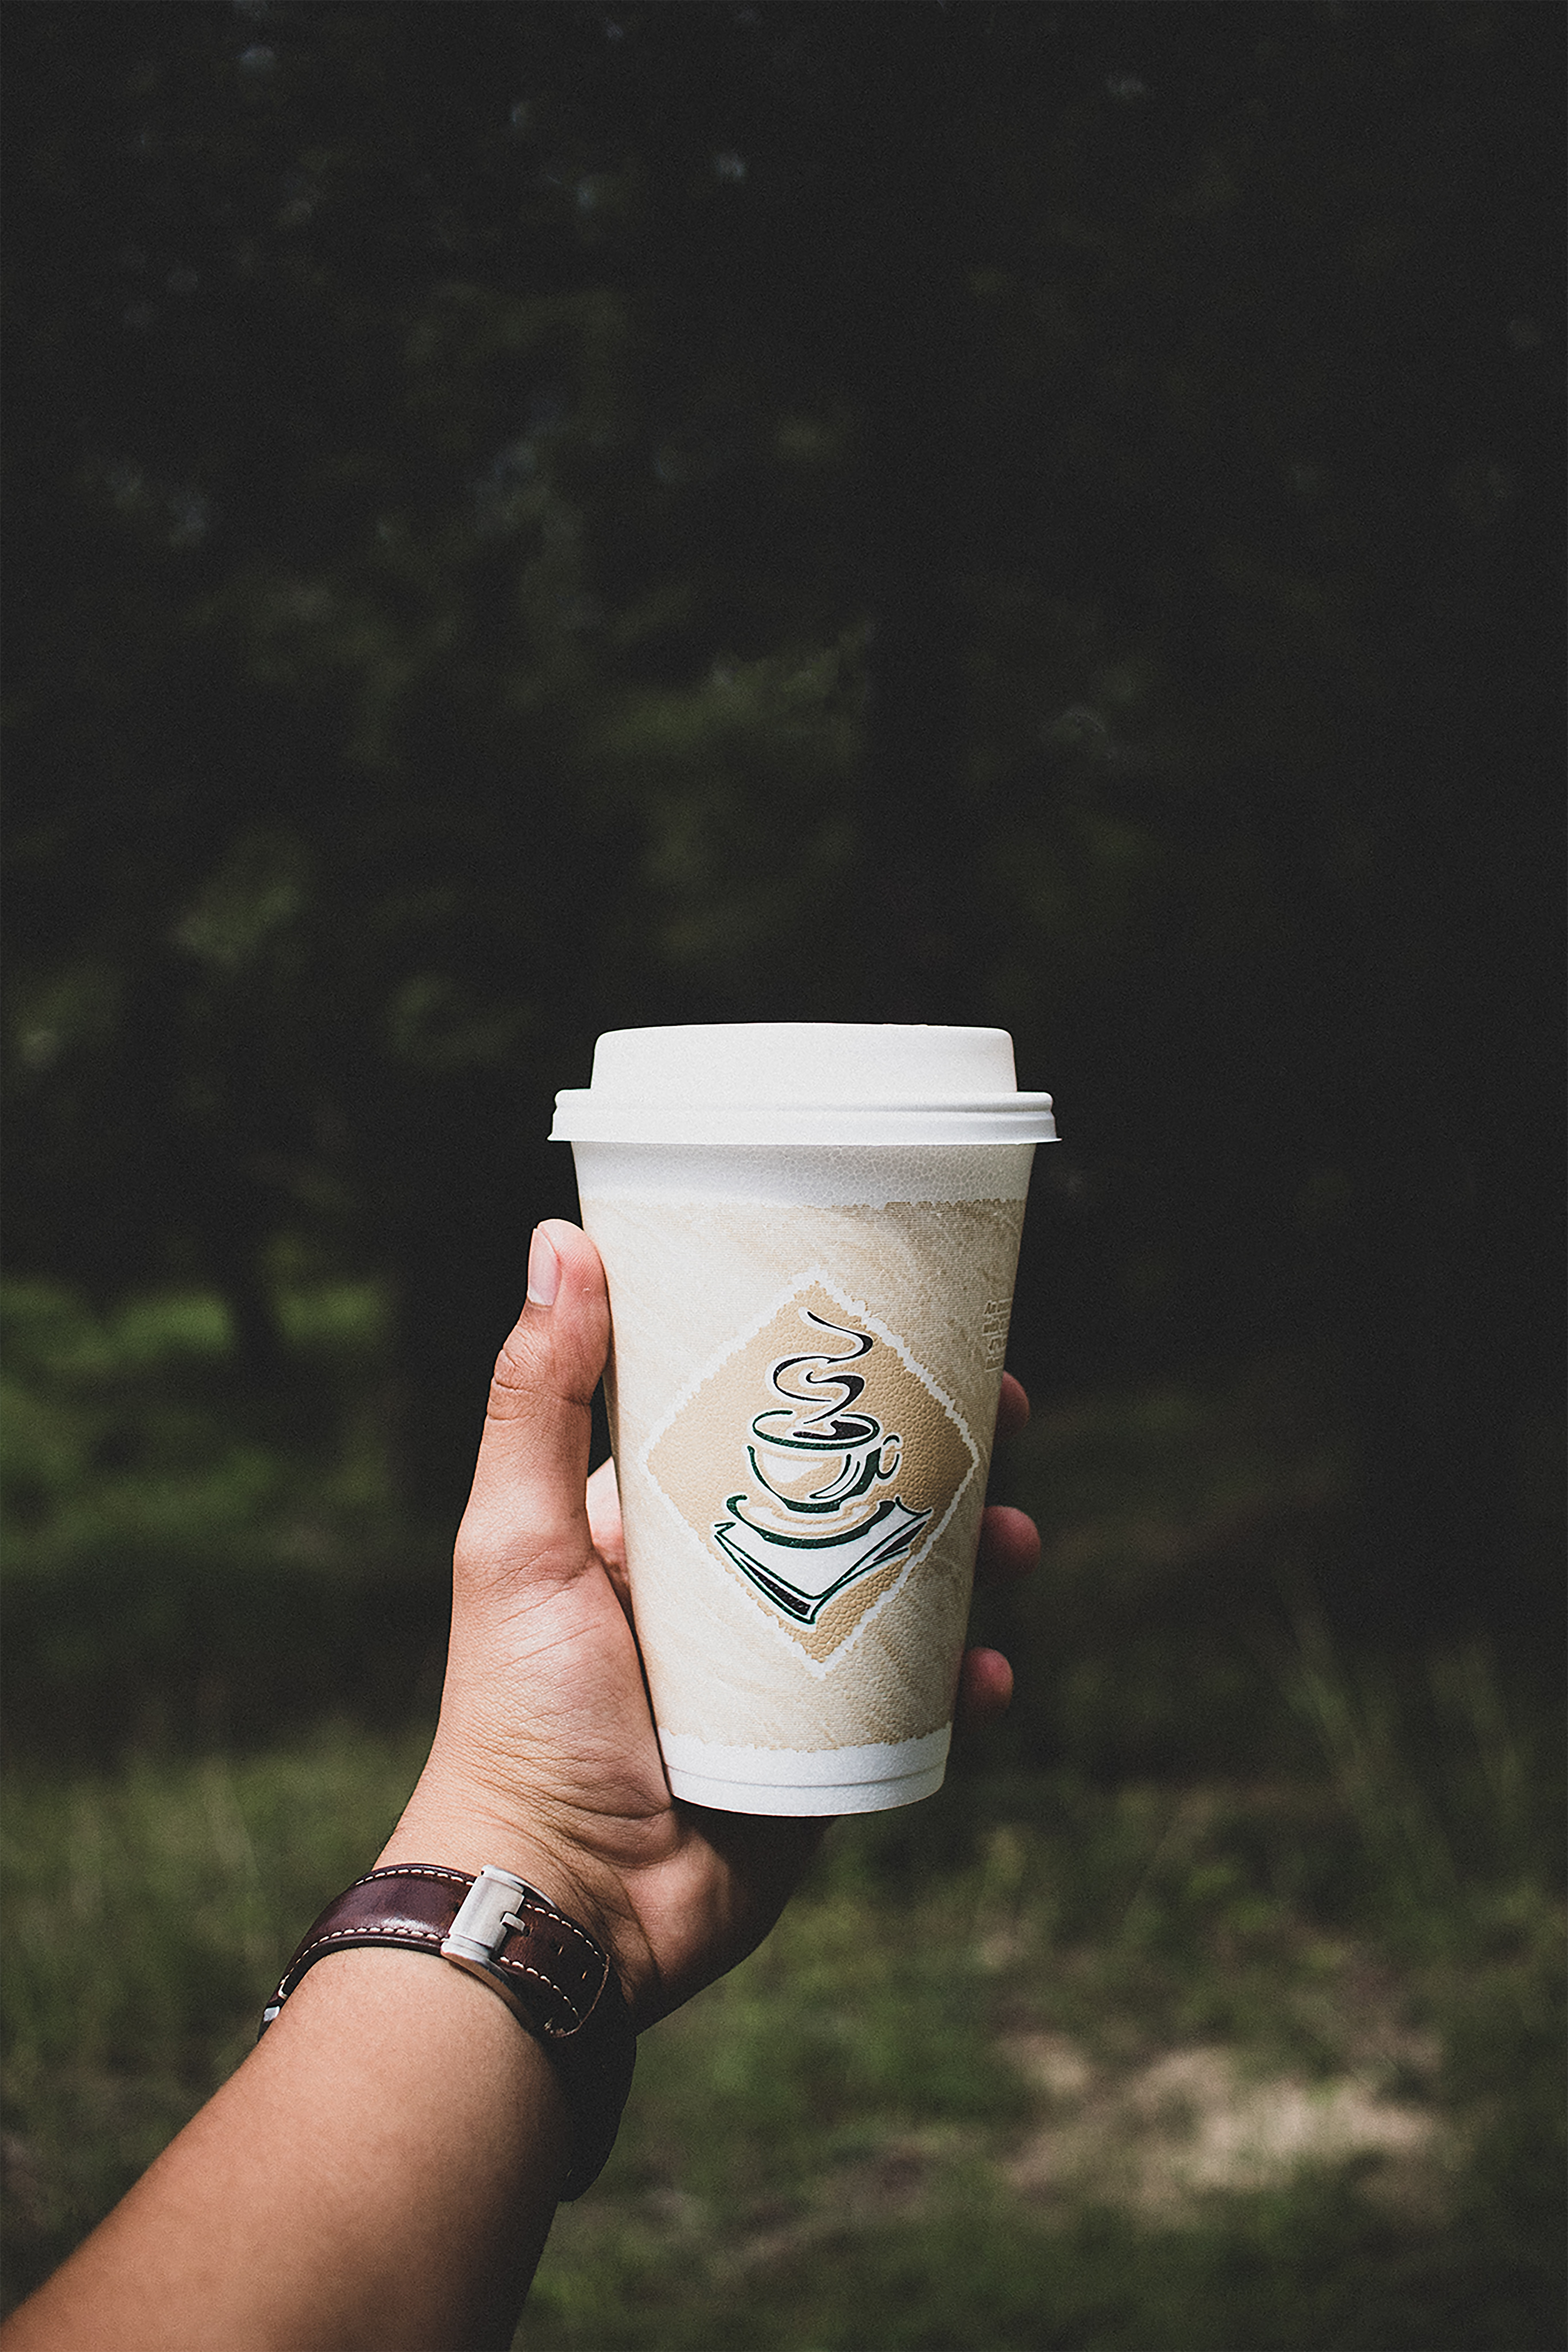 Photo Of Person Holding White Paper Cup 183 Free Stock Photo